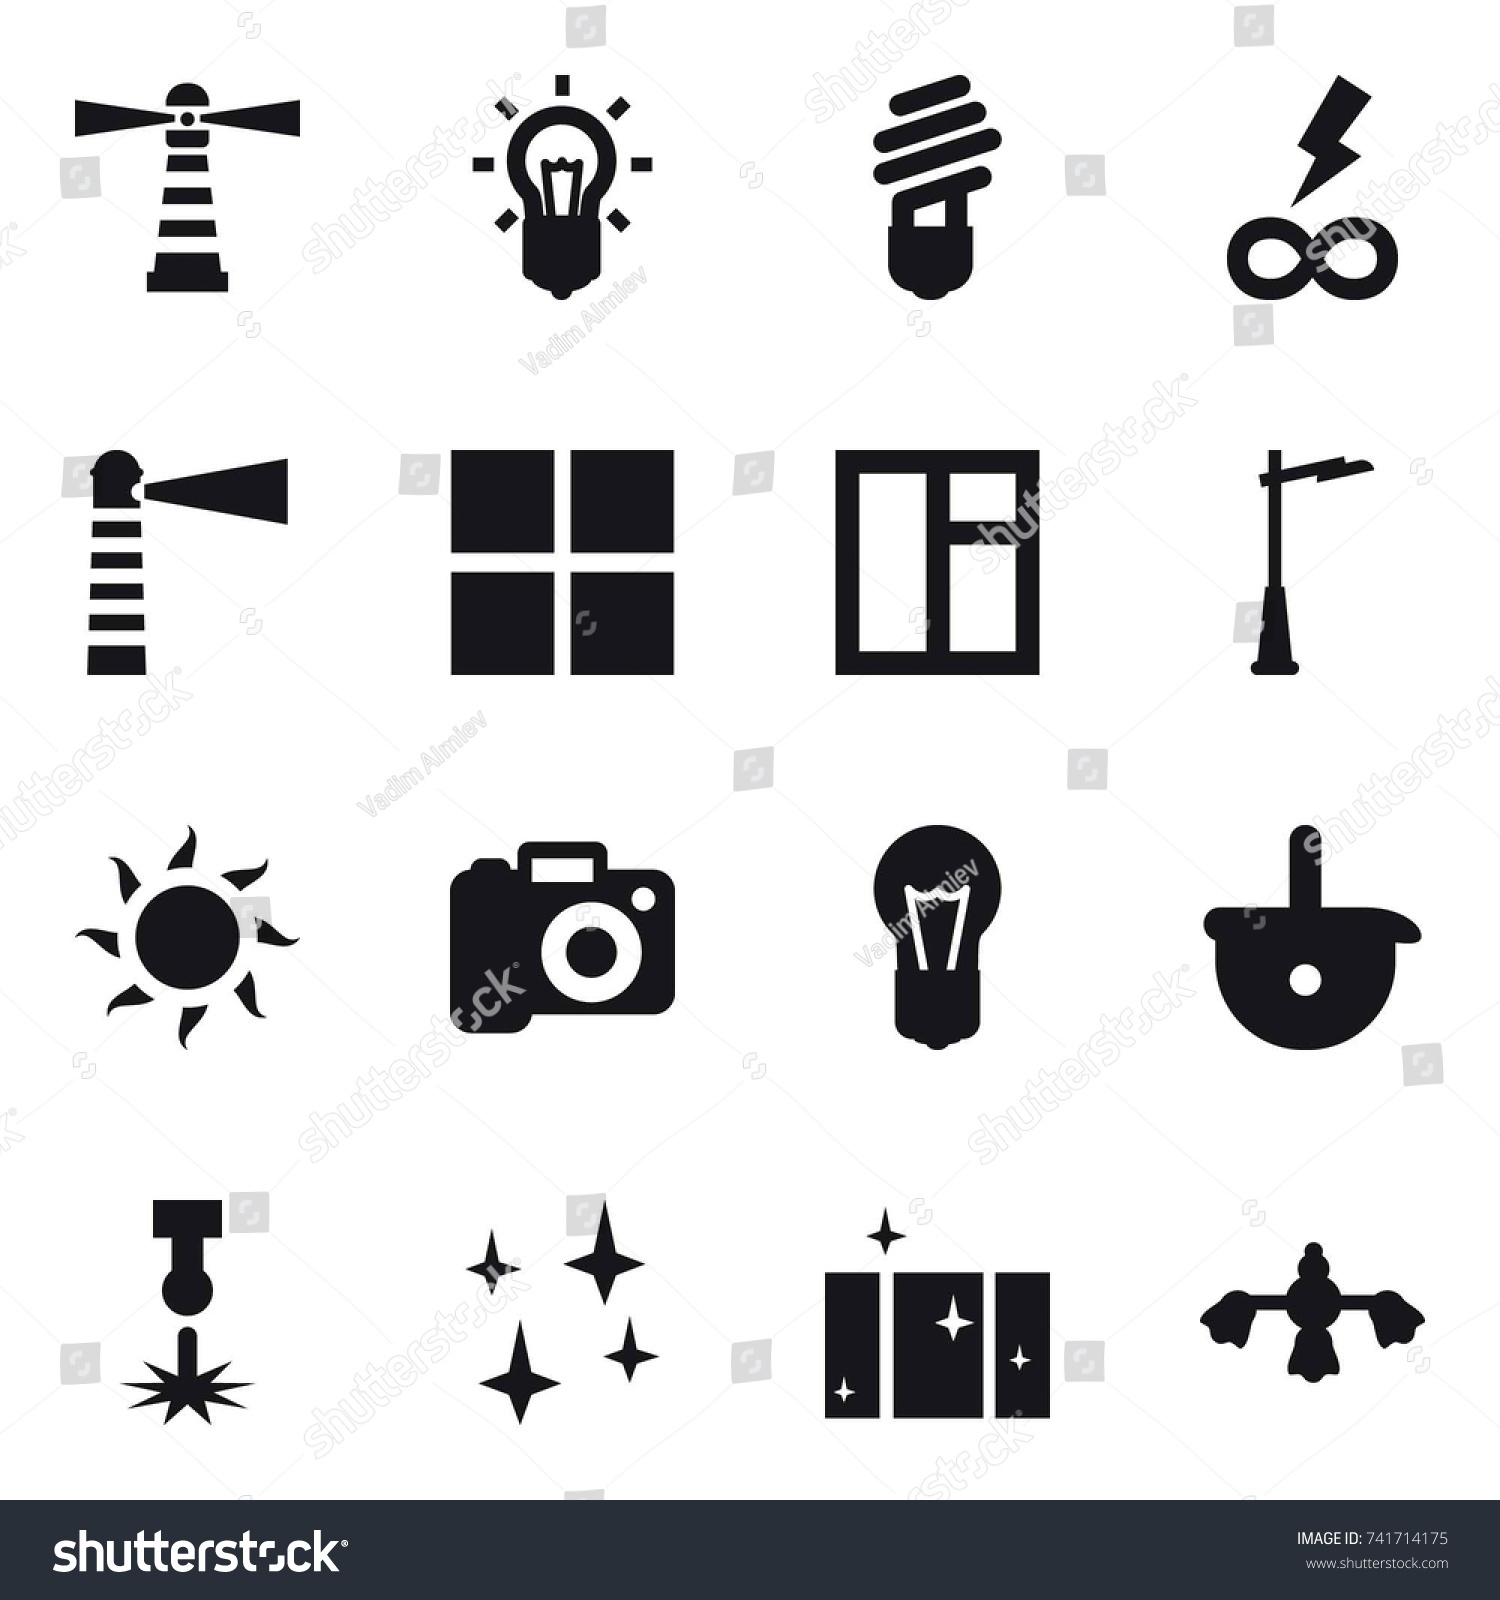 16 Vector Icon Set Lighthouse Bulb Stock Vector 741714175 - Shutterstock for Power Window Symbol  555kxo